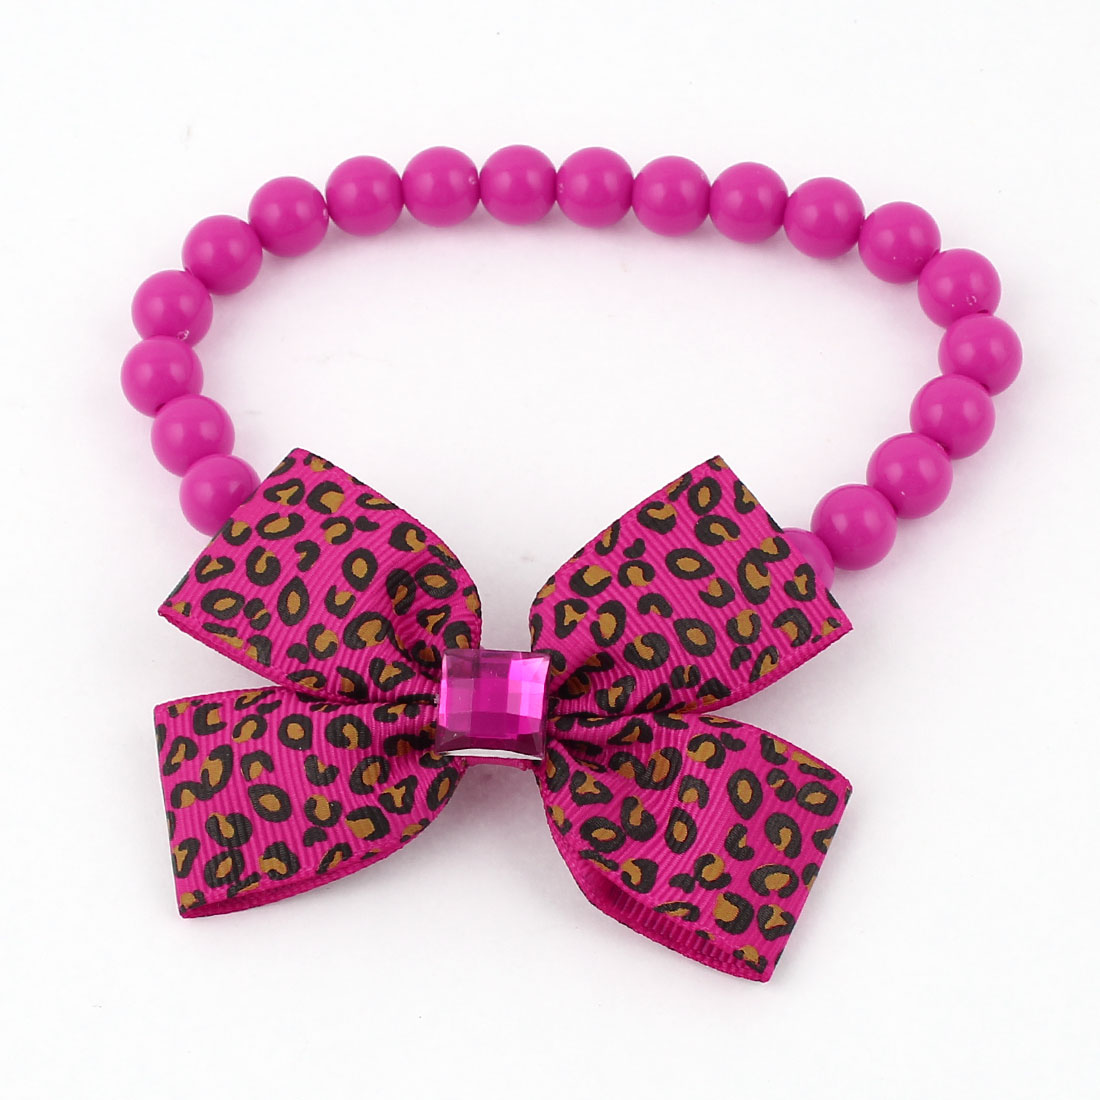 Faux Crystal Accent Plastic Beads Elastic Collar Necklace Fuchsia L for Pet Dog